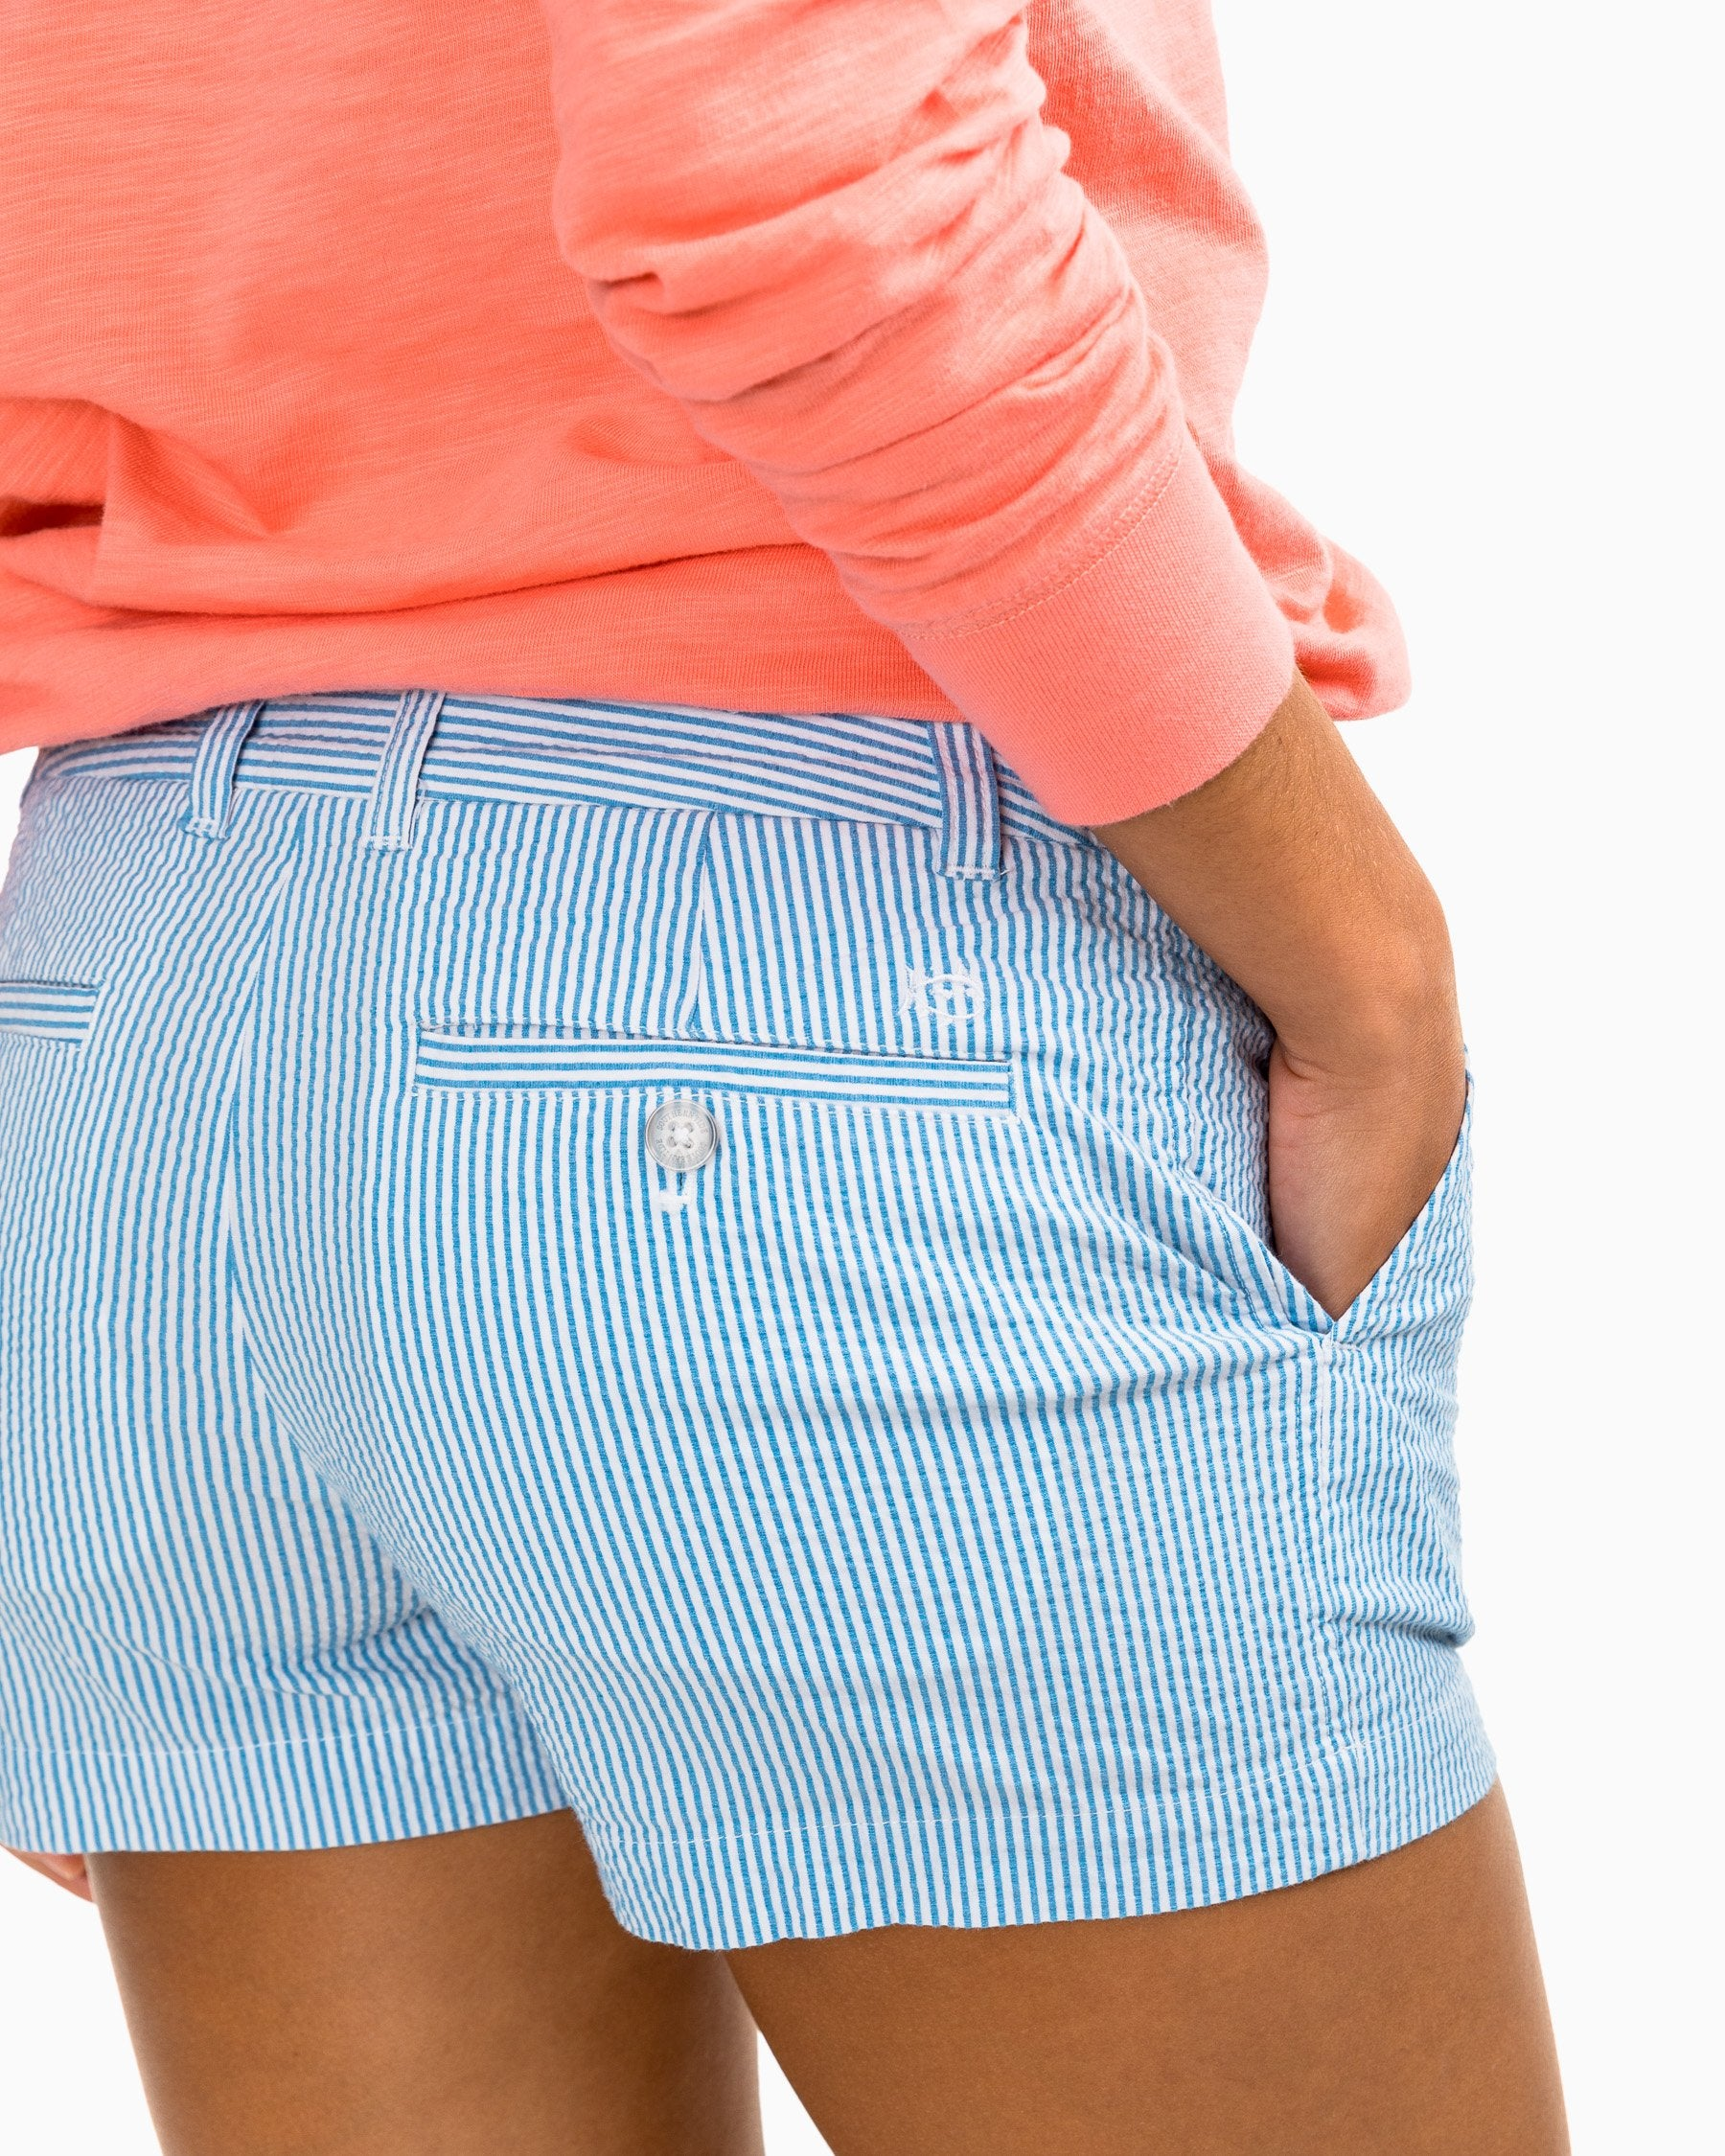 "ST 3"" Leah Seersucker Shorts - Boat Blue"